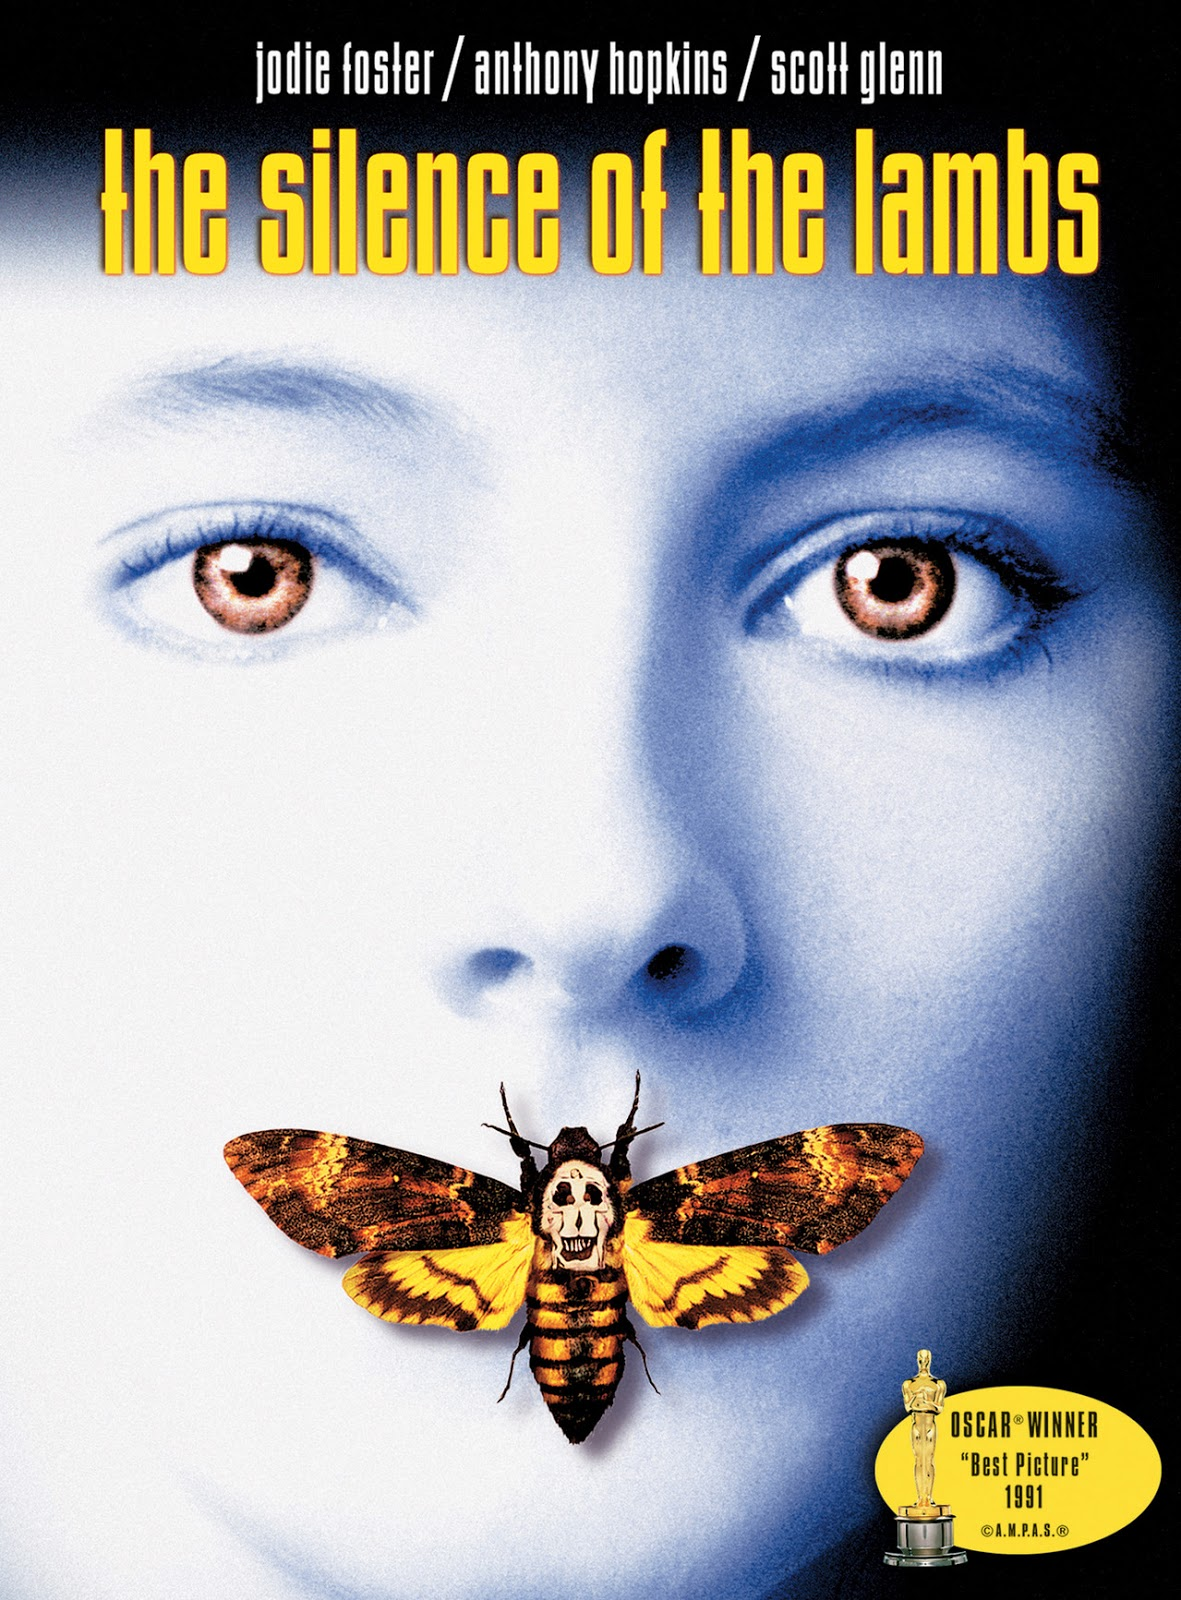 Buffalo Bill Silence Of The Lambs Quotes as well Caitlin Stasey Stuns Shoulder Promotes New FOX Drama Series APB Posing Naked Spooning Dog moreover Brooke Smith furthermore Top 10 Killers Horror Moviesonline Movie For Free also Movie Scripts 2. on silence of lambs free online